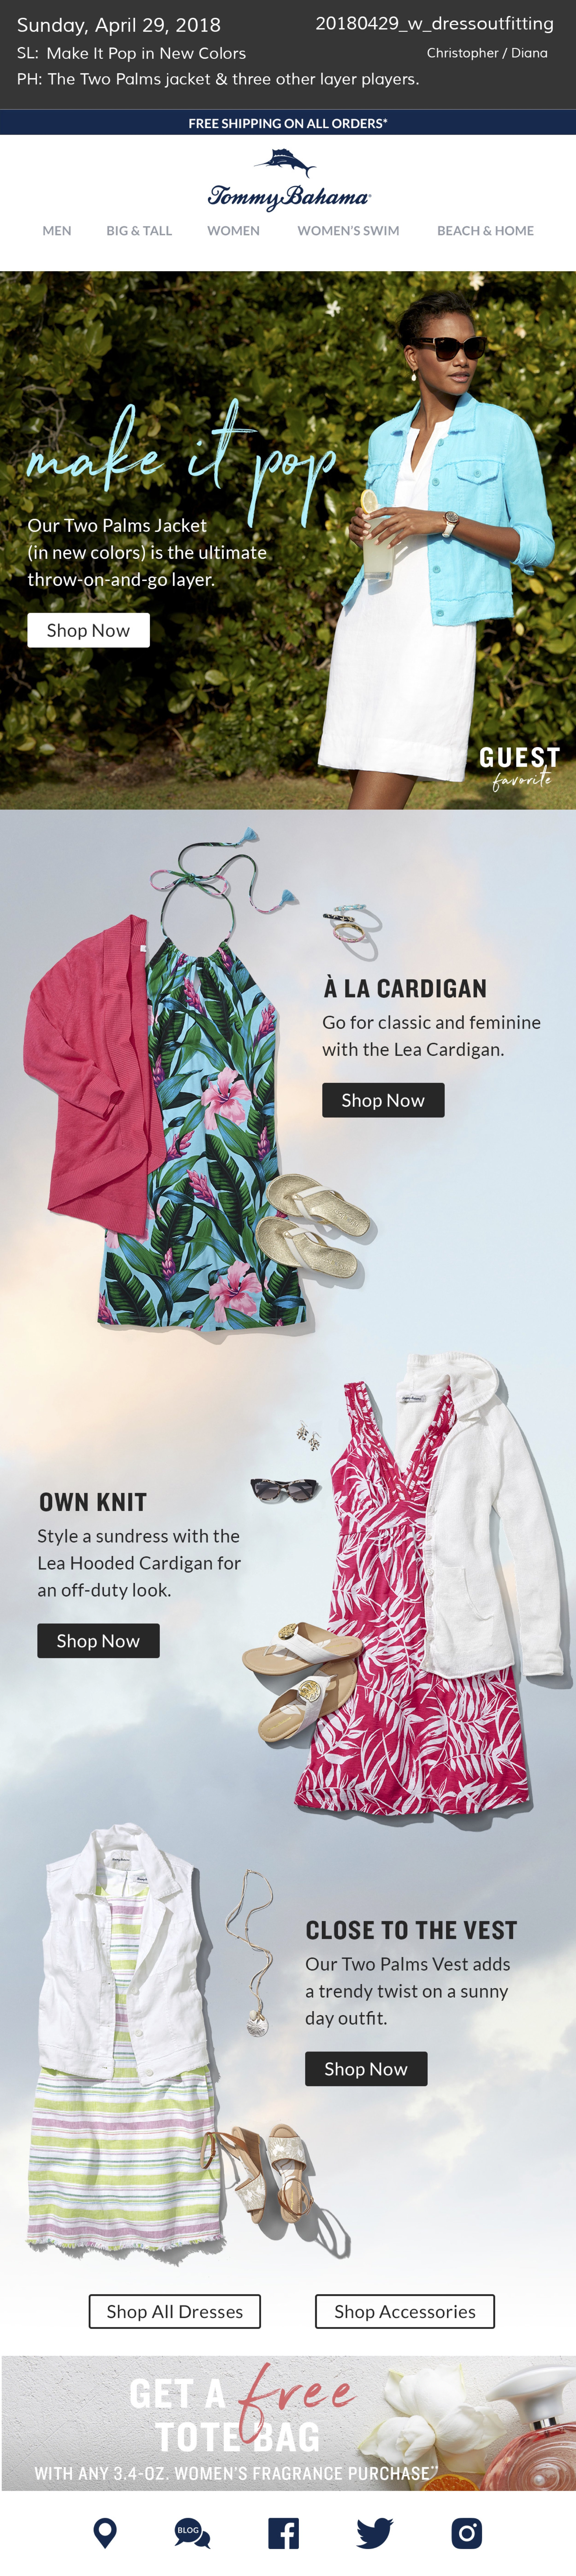 Tommy Bahama_Womens Email_ Dress Outfitting.jpg